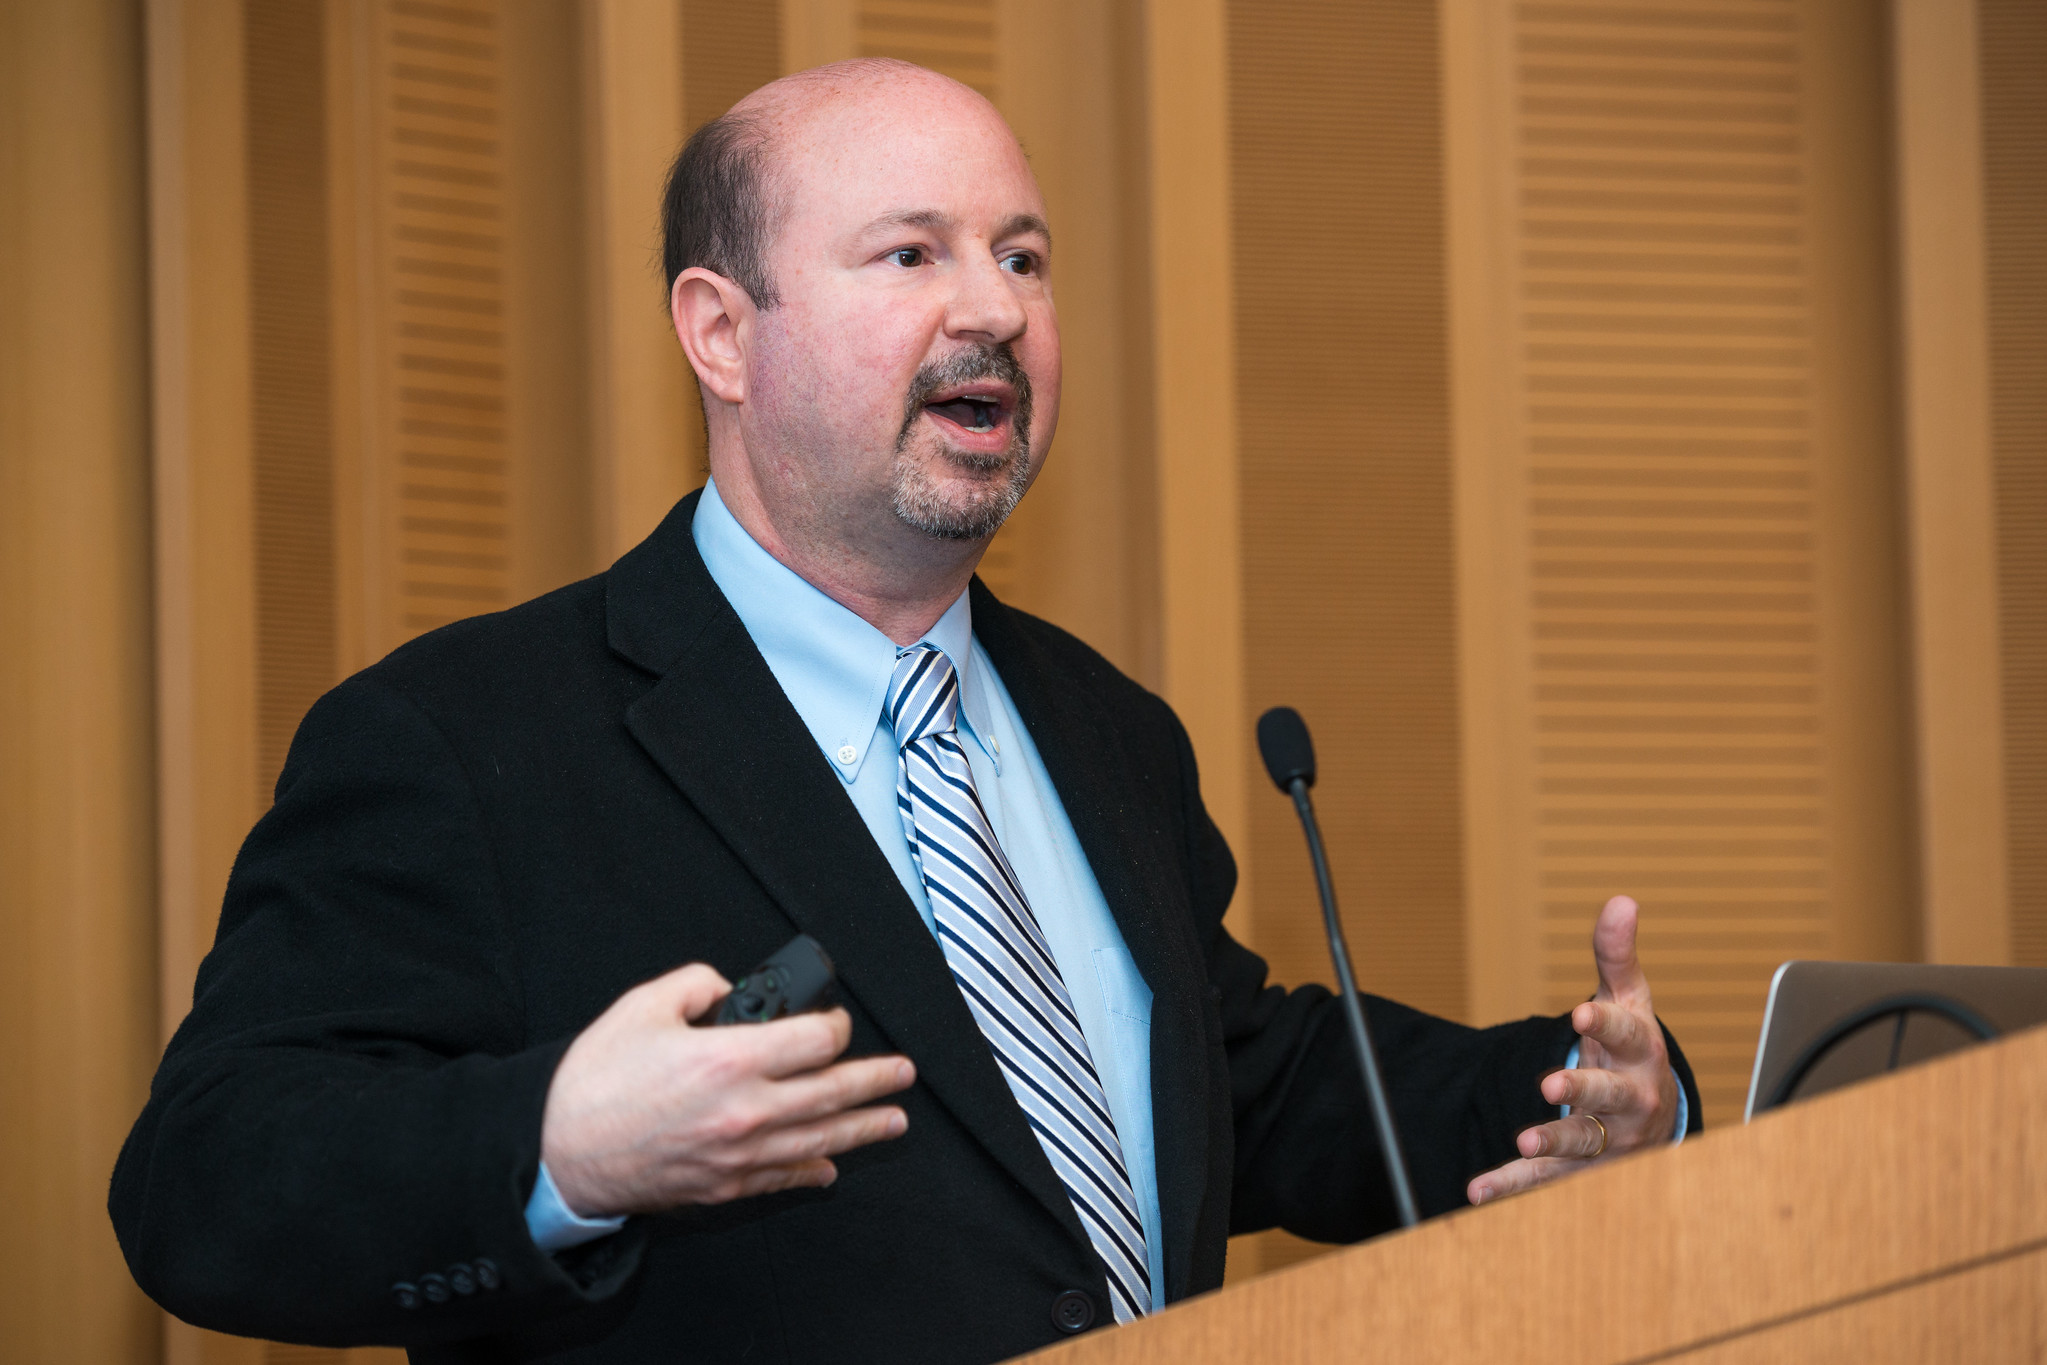 Climatologist Michael Mann speaks at the Academic Freedom Conference at Johns Hopkins University. Credit: Mike Ferguson/AAUP